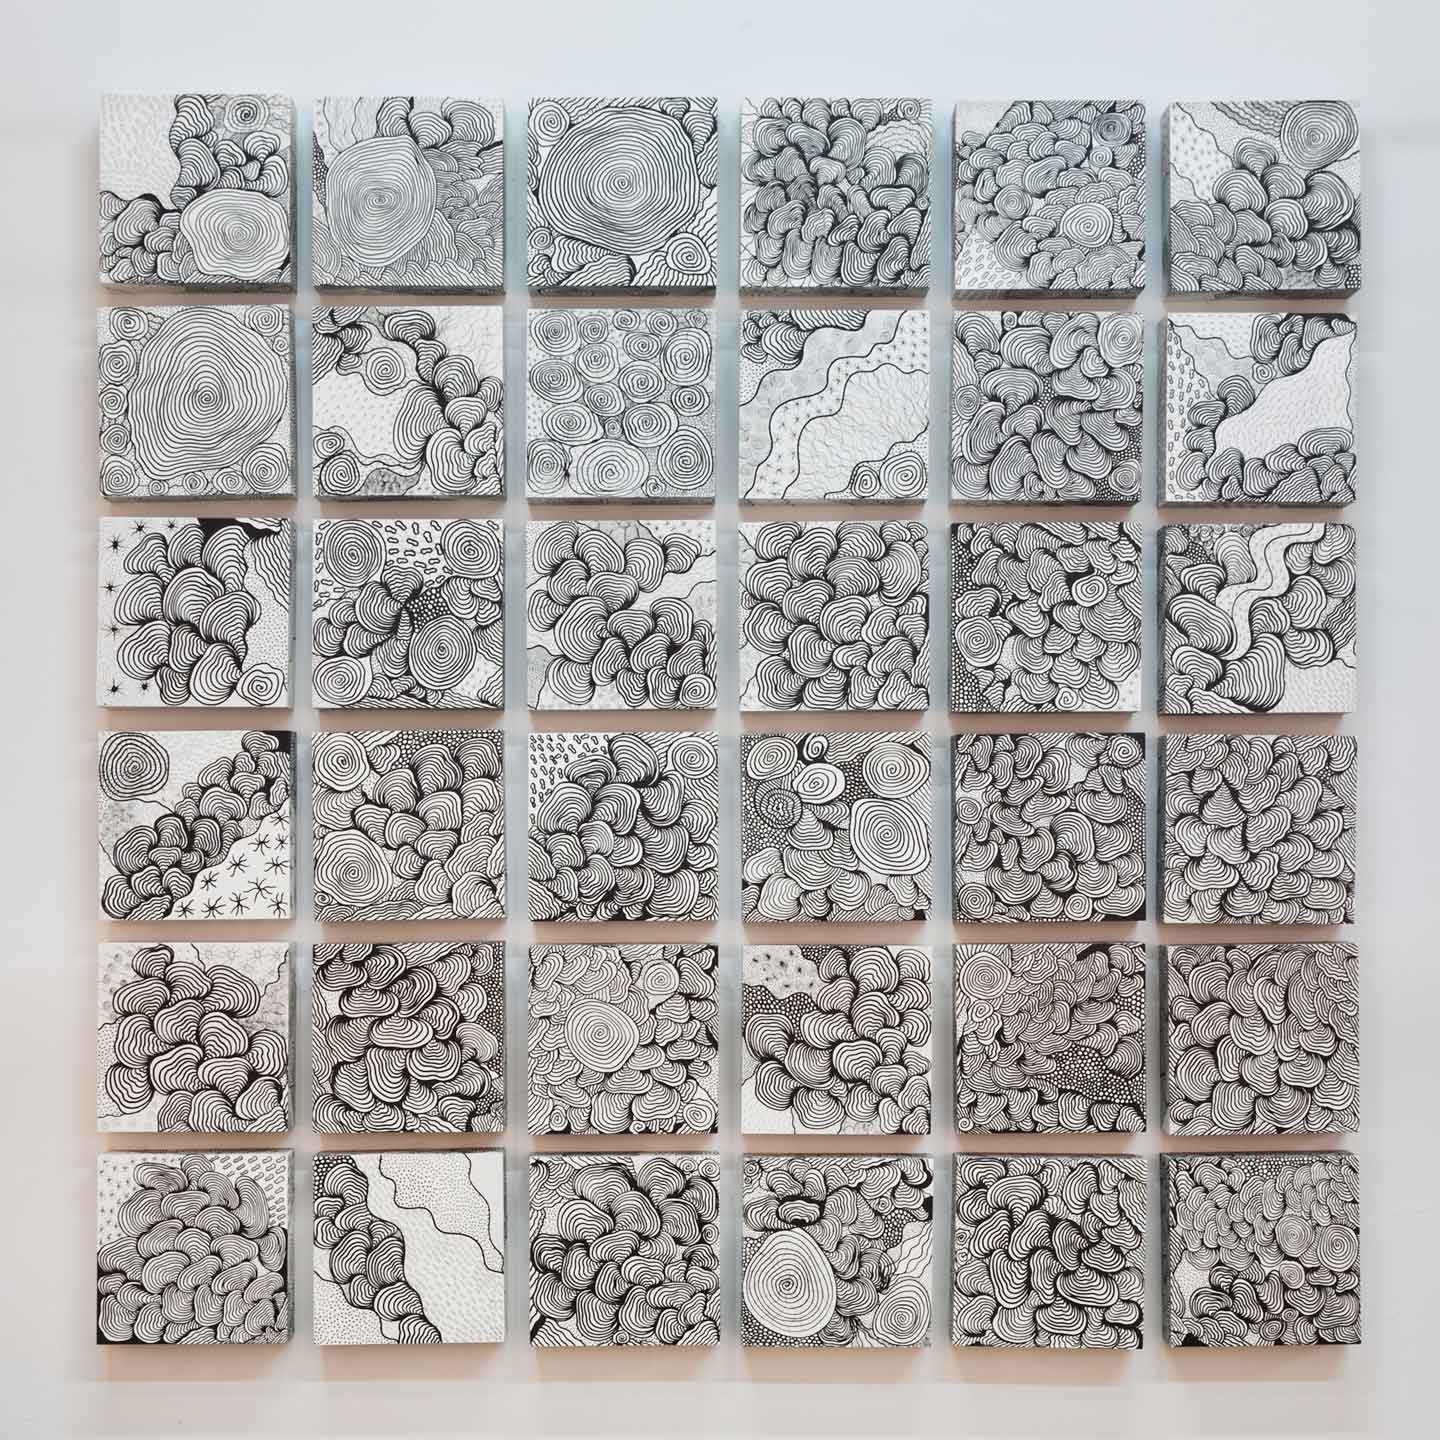 "Formation 1, 2009, enamel and acrylic on wood panels, 84"" x 84"" x 4"""